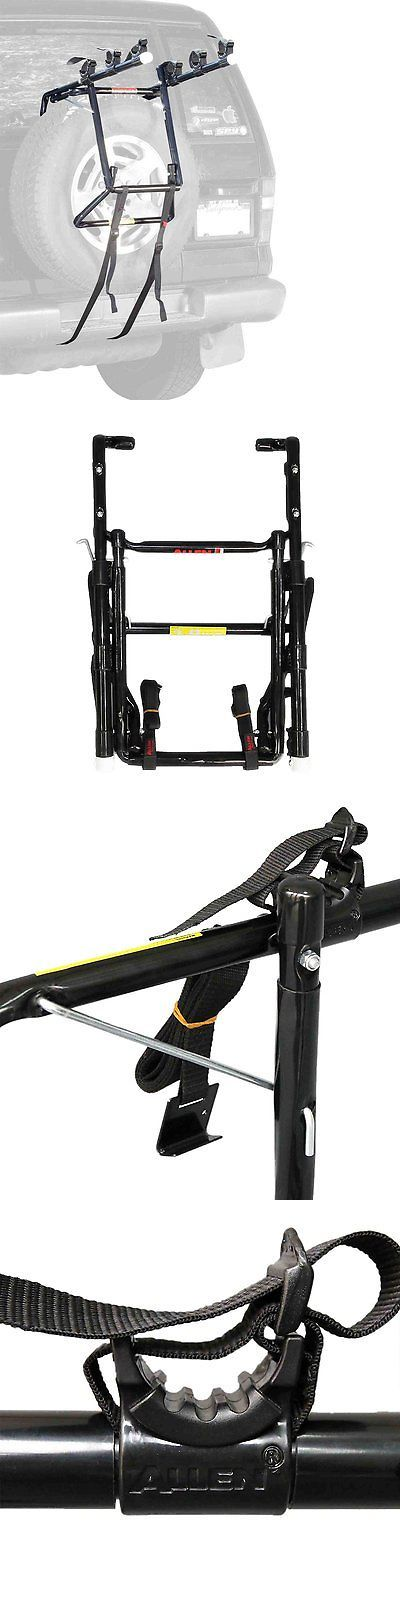 Other Bicycle Accessories 158998: Allen Deluxe 3 Bike Spare Tire Mount Rack New Car Bicycle Carrier Suv Jeep Bikes -> BUY IT NOW ONLY: $86.95 on eBay!